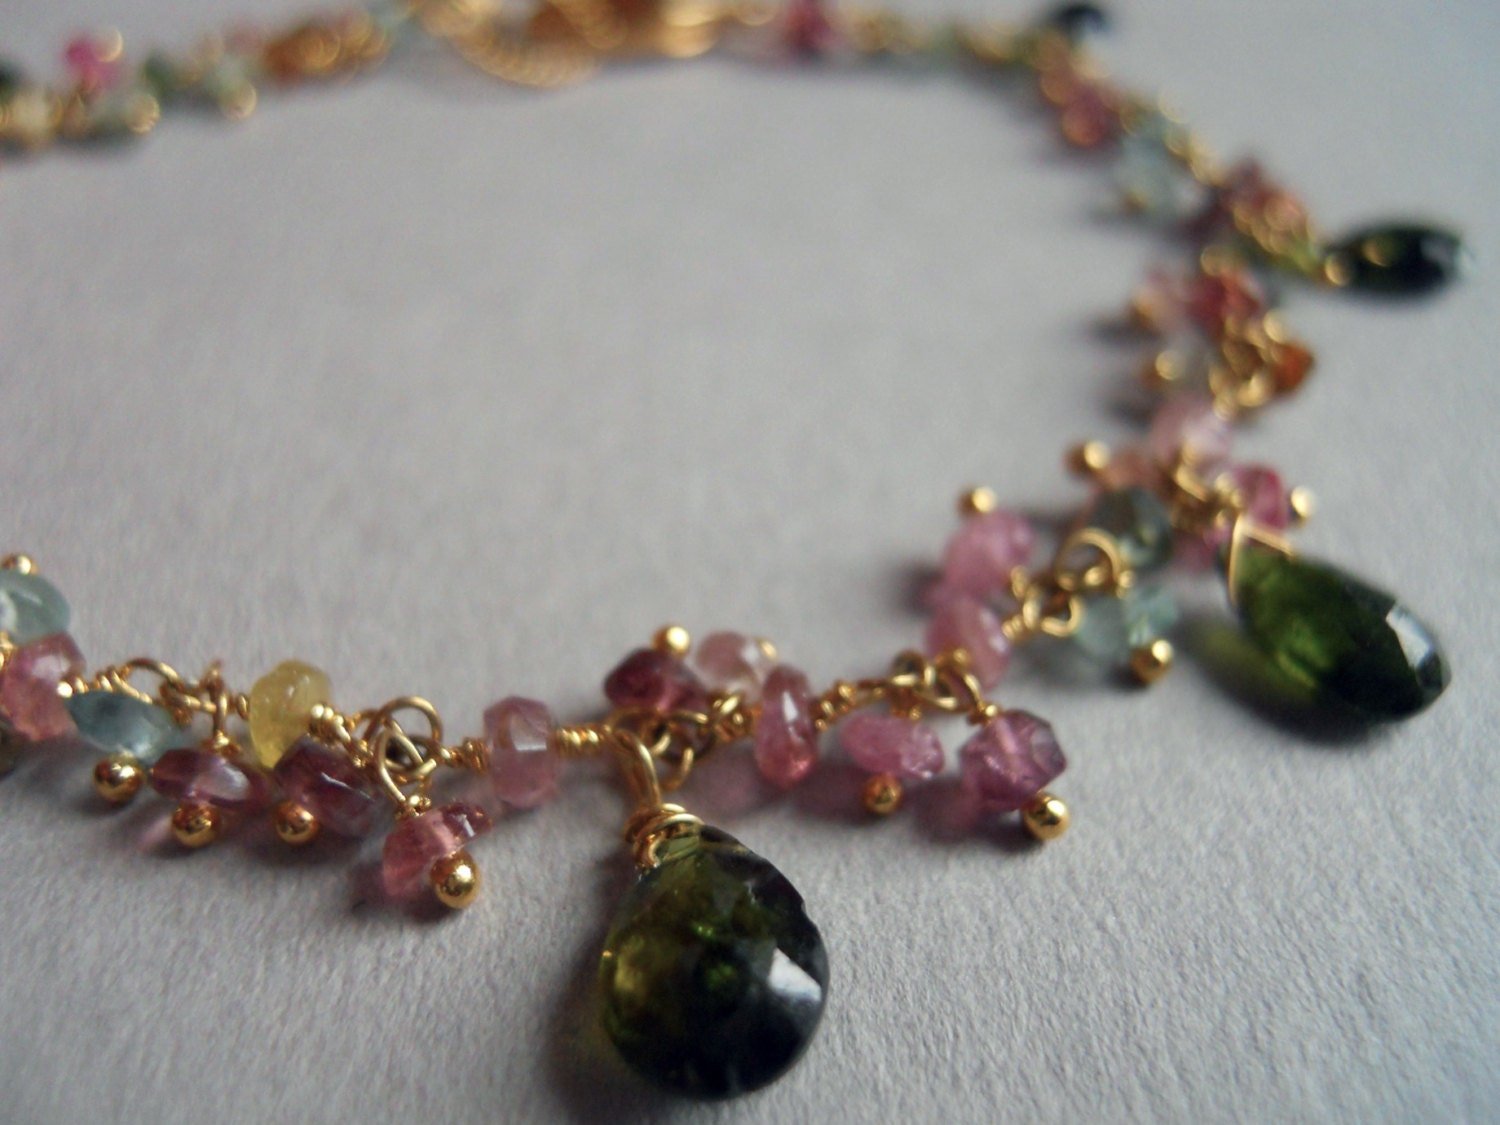 Green Day Multi-Colored faceted gemstone and green garnet bracelet - $75.00 USD